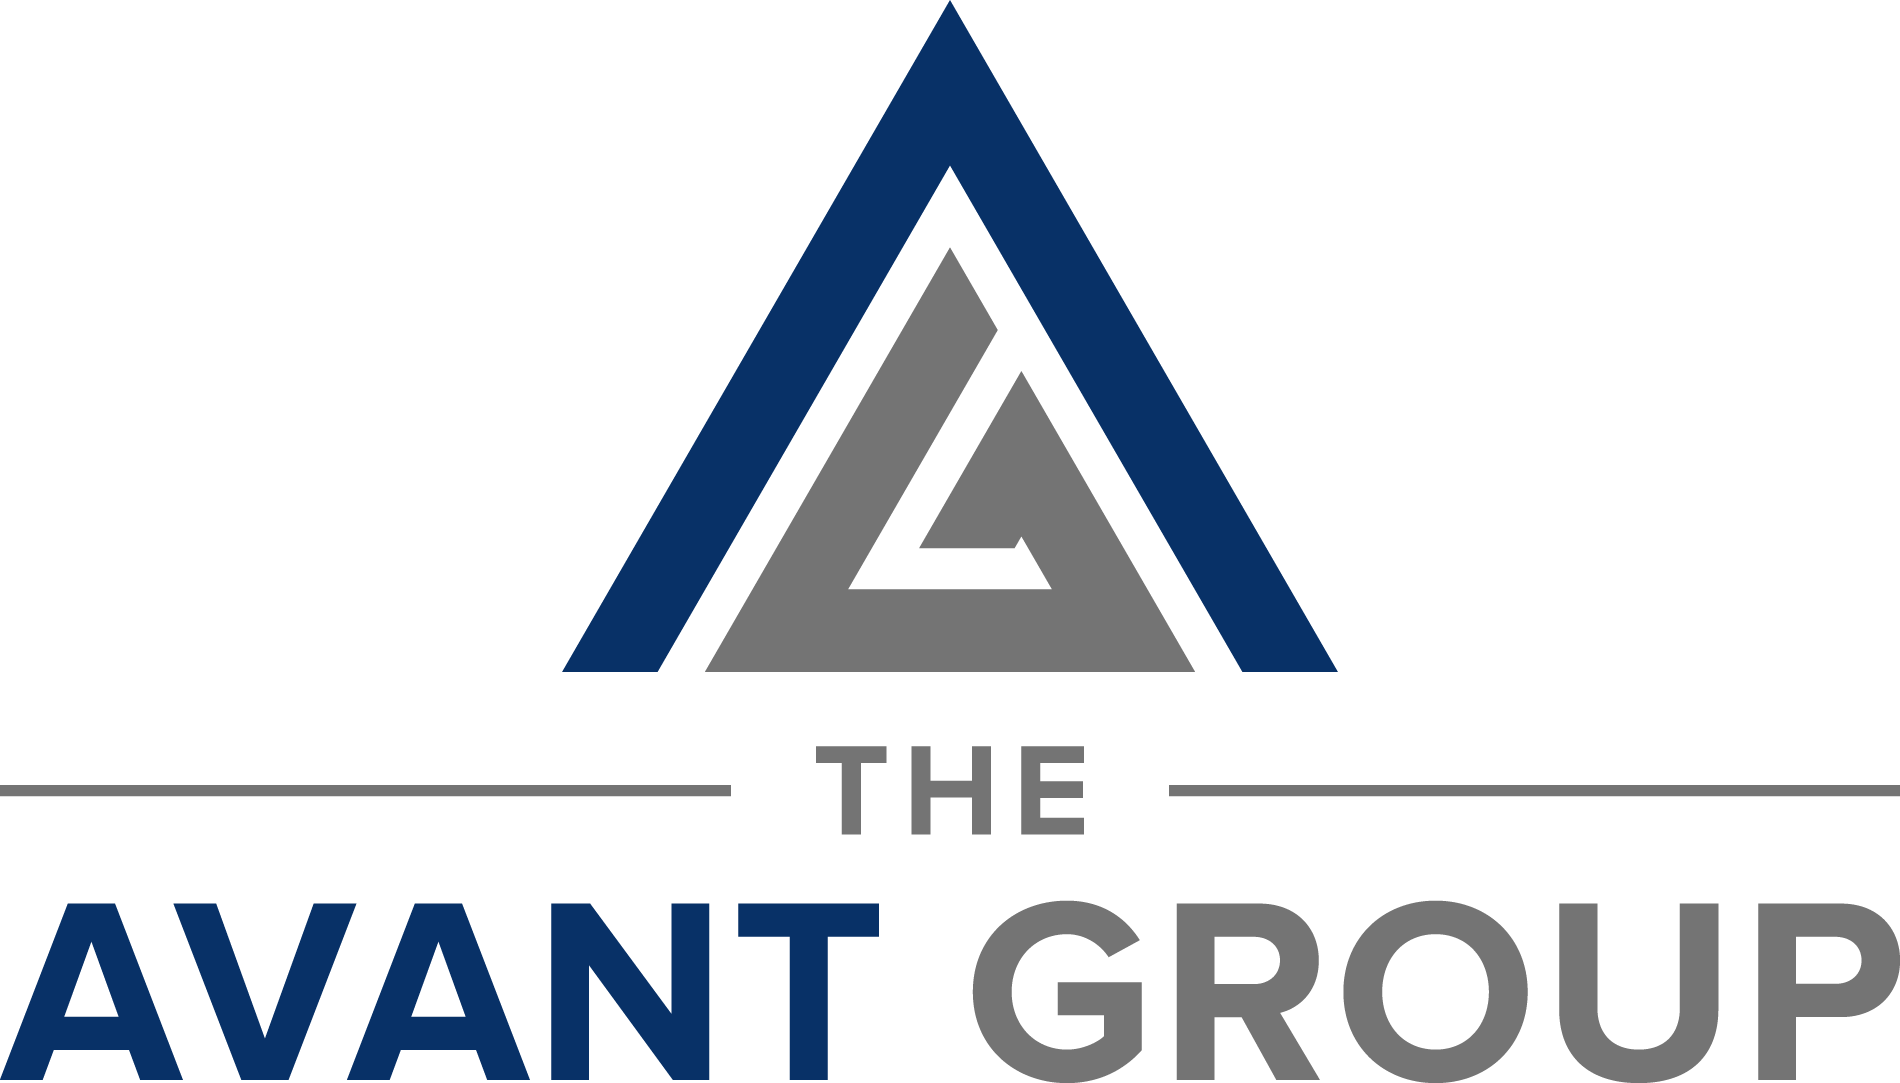 The Avant Group